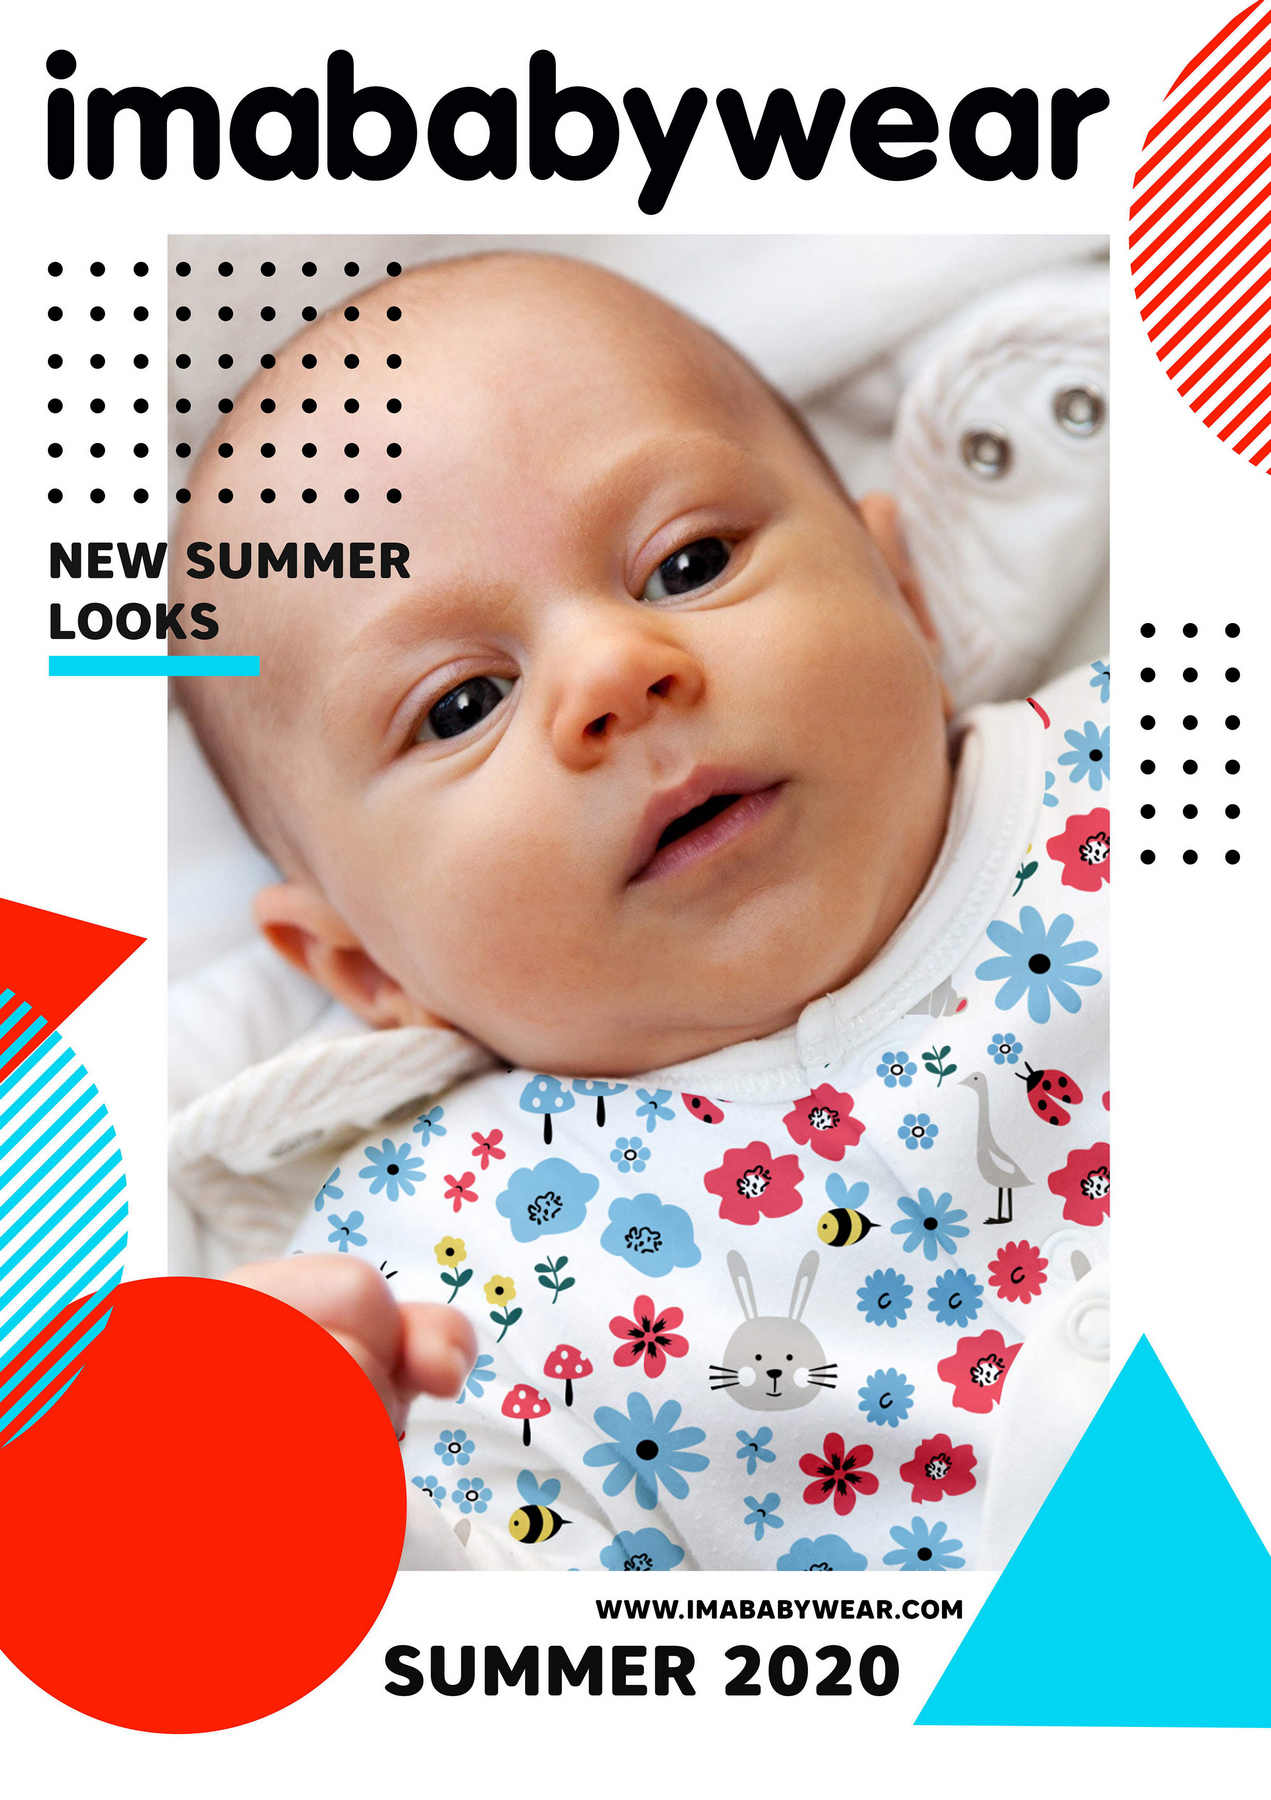 summer-2020 front page-imababywear